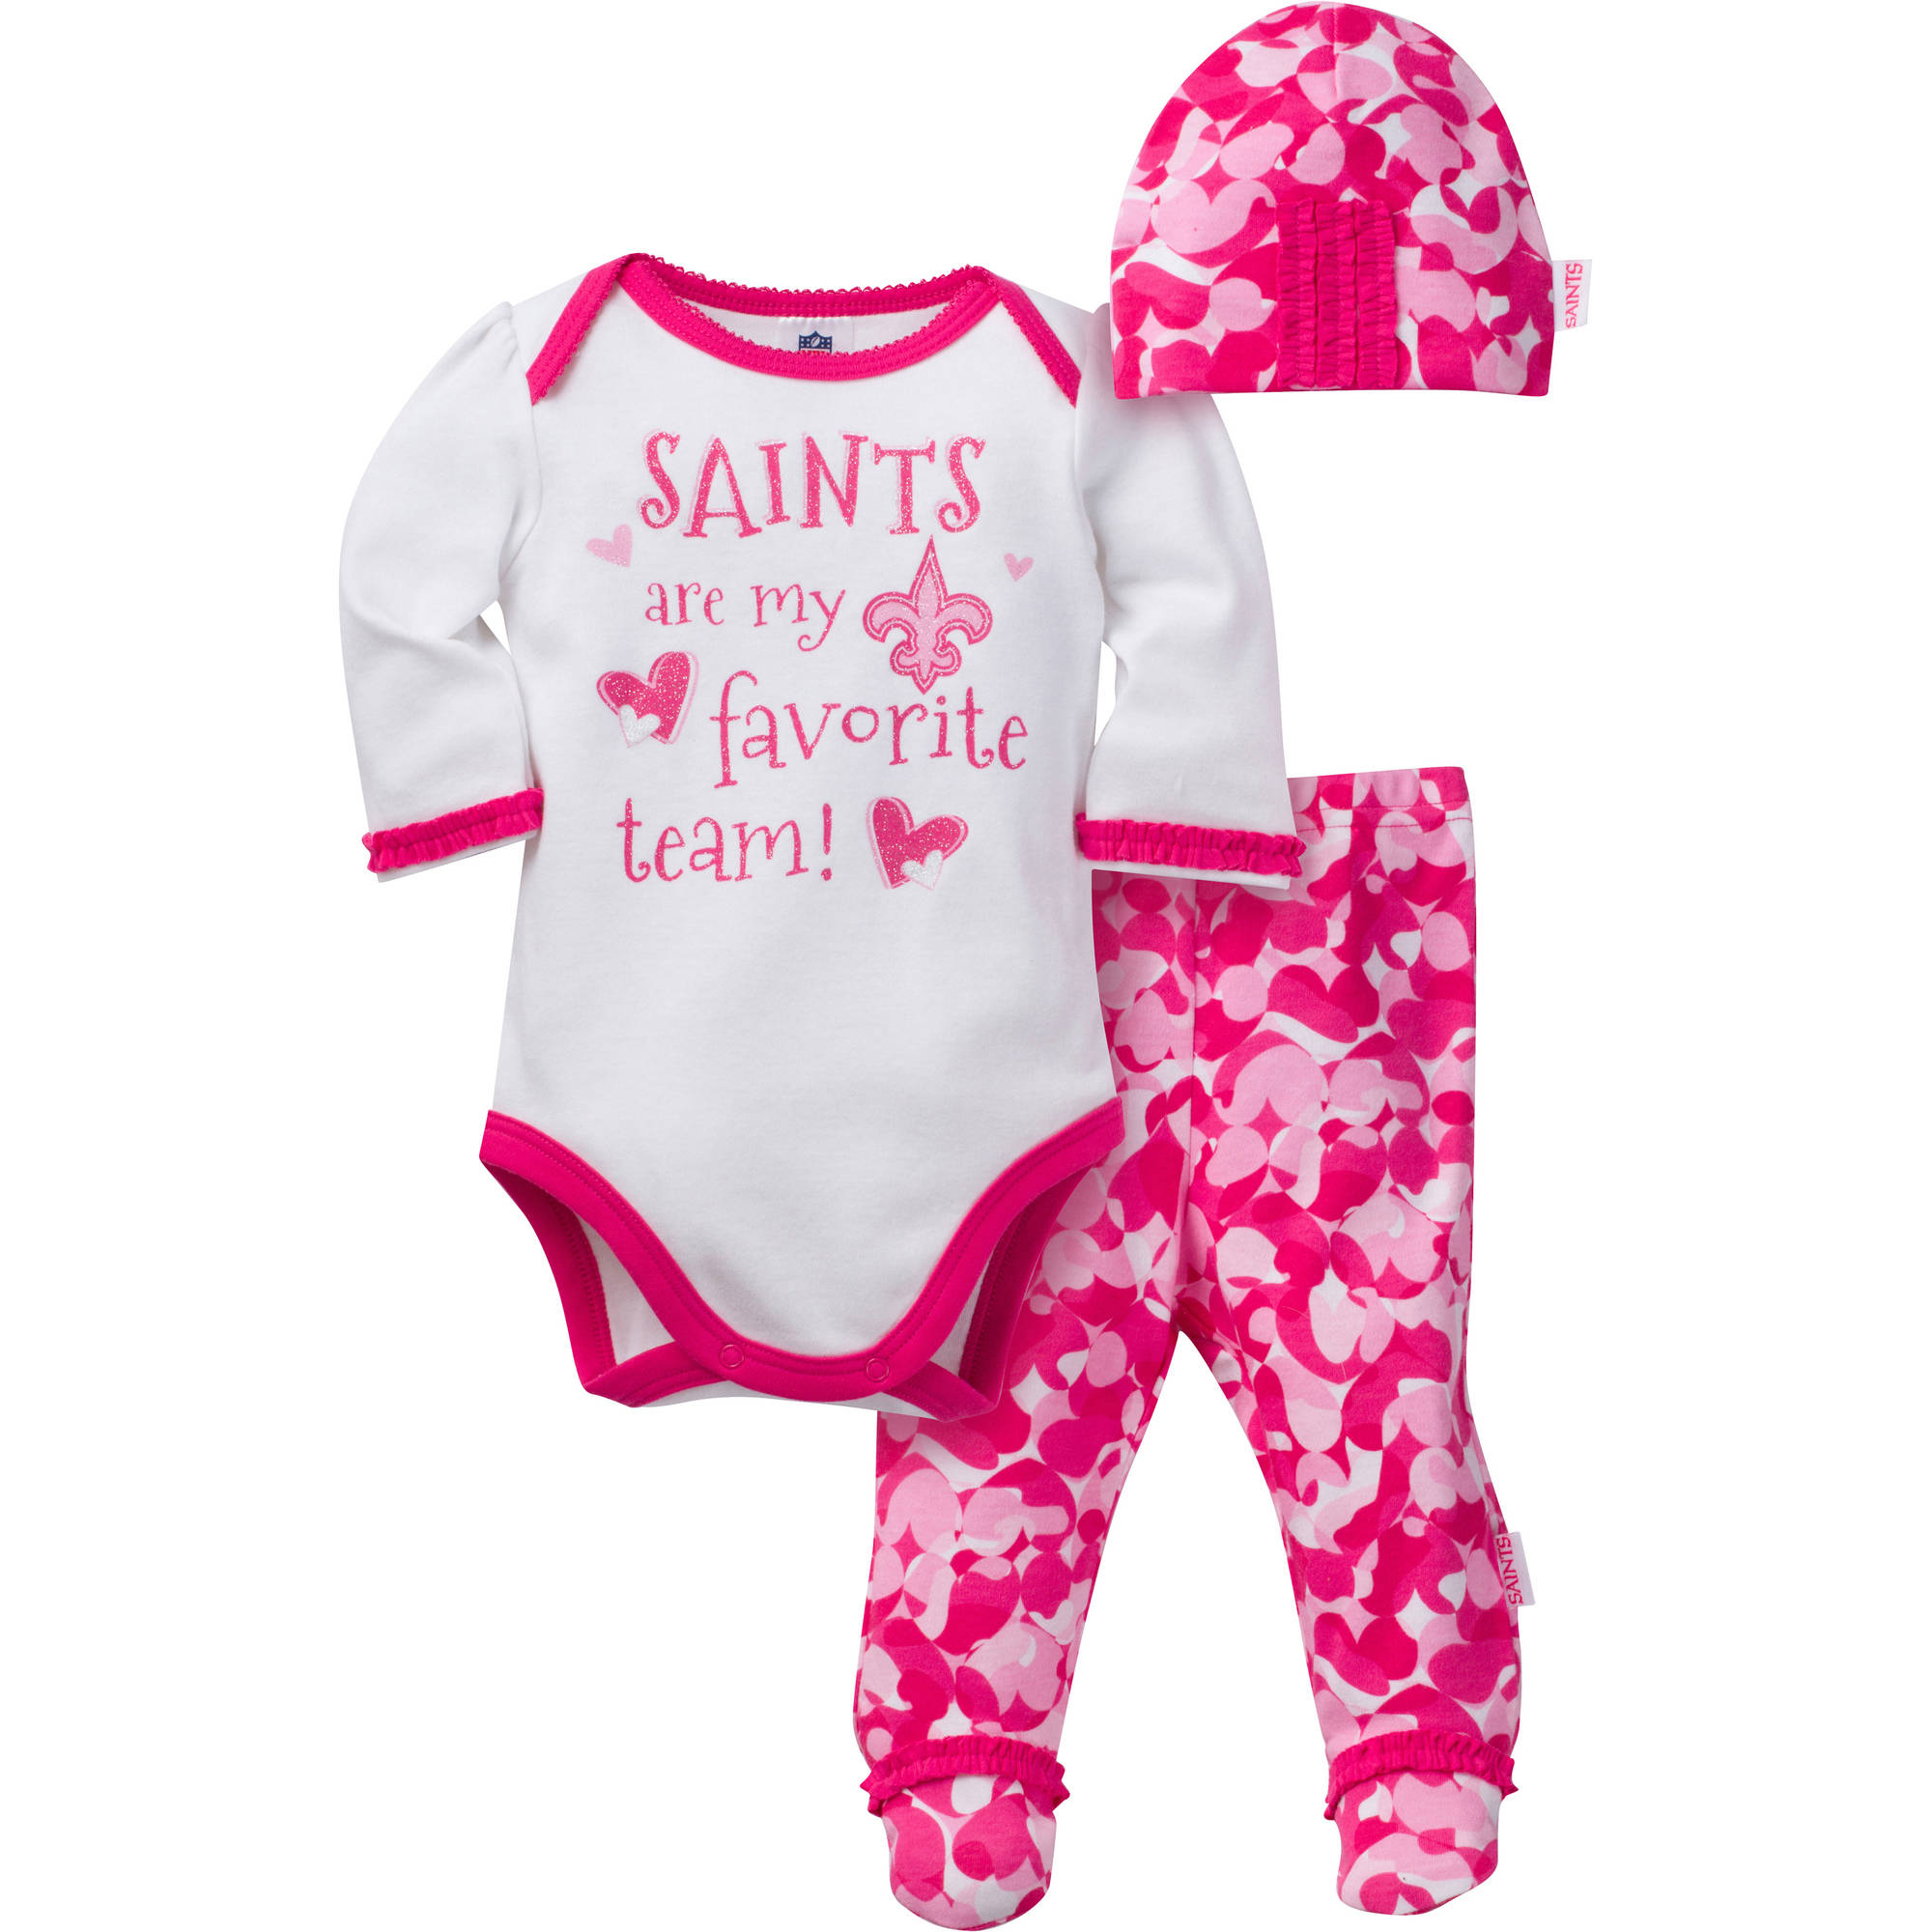 NFL New Orleans Saints Baby Girls Bodysuit, Pant and Cap Outfit Set, 3-Piece